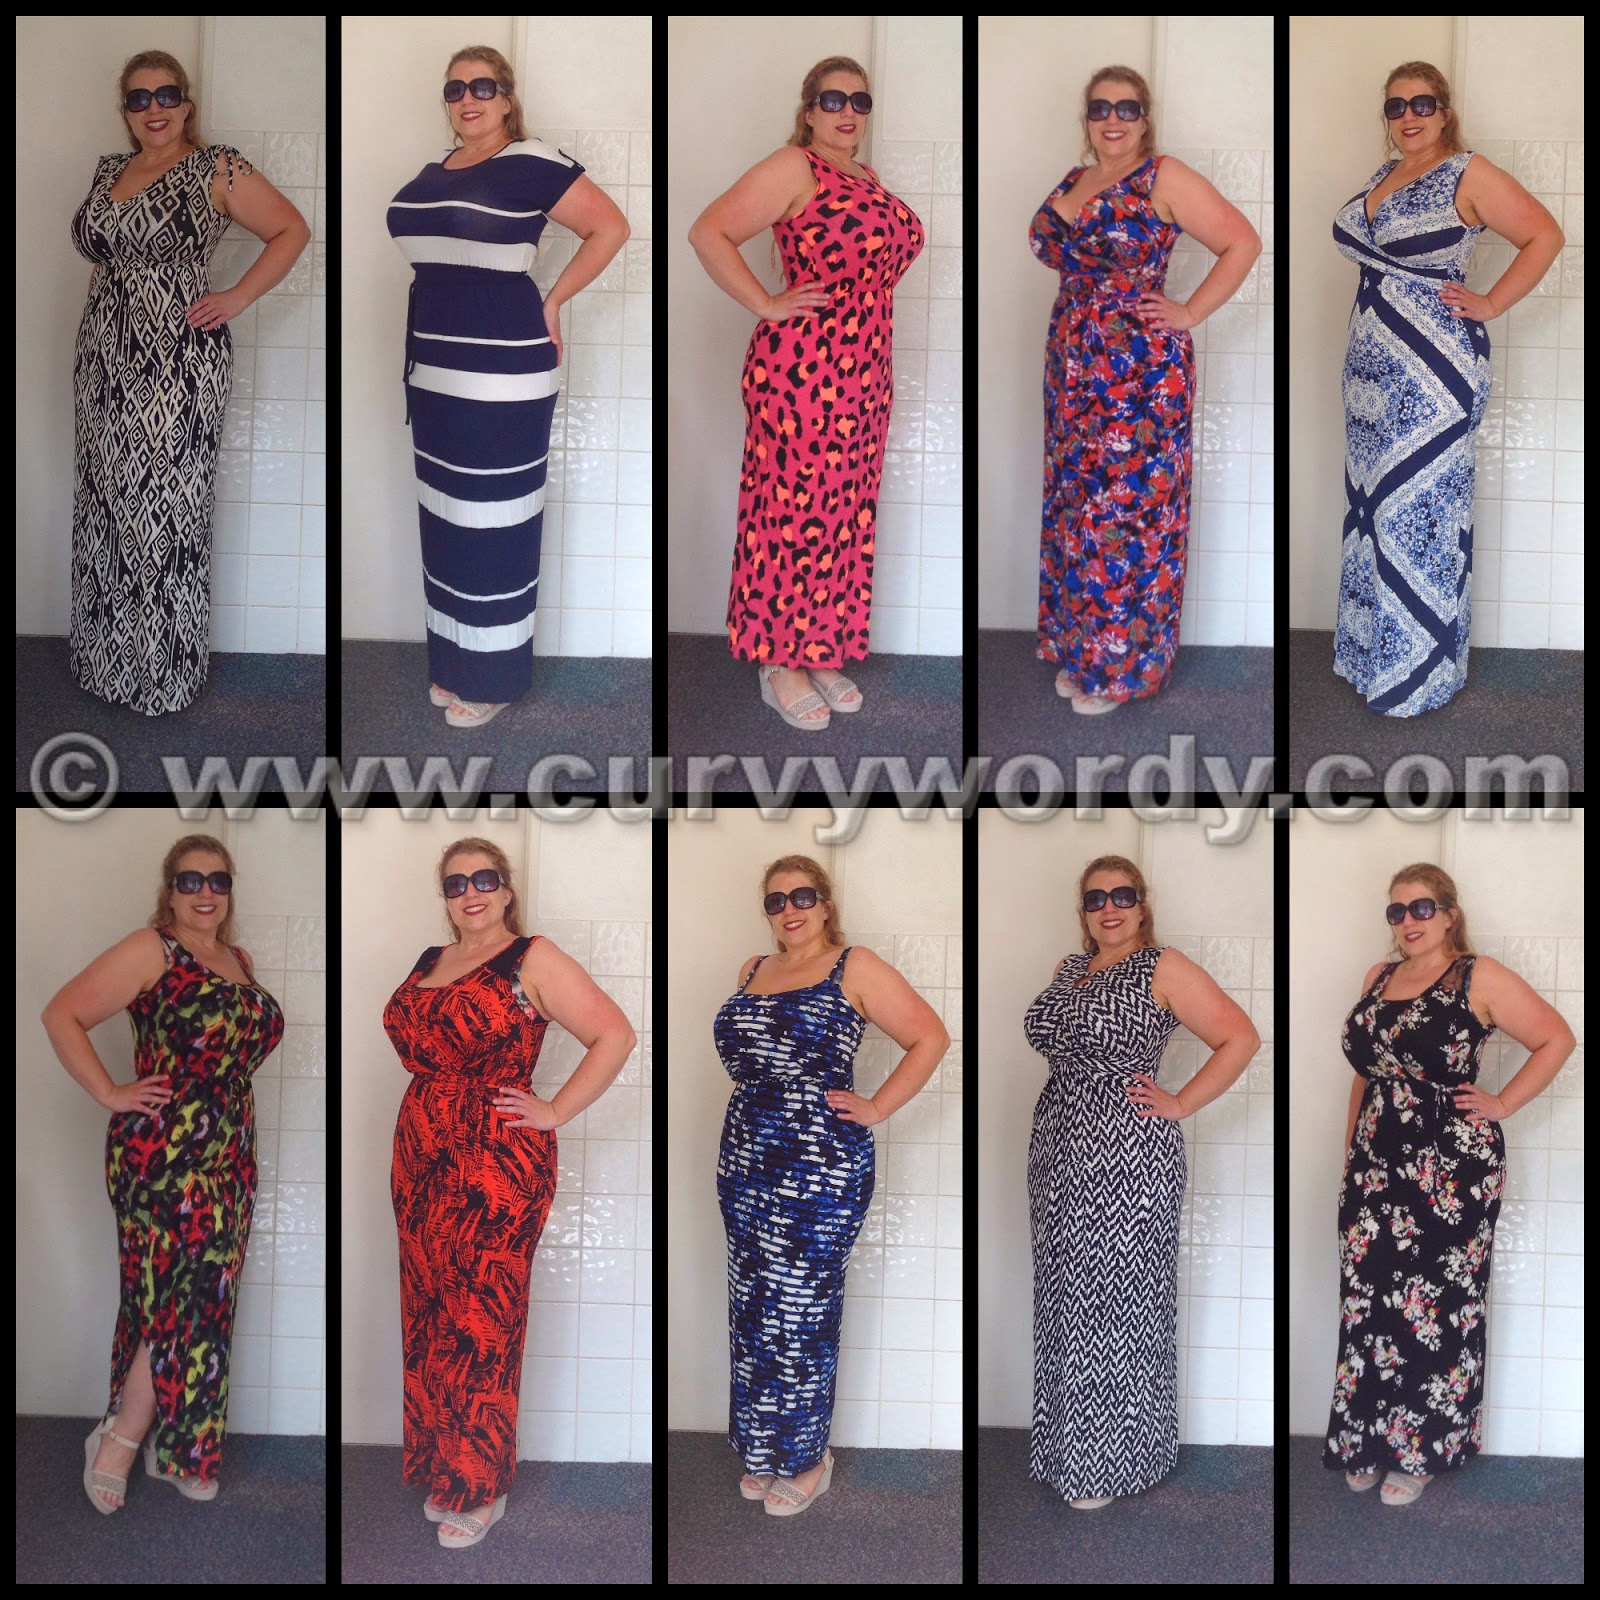 f06ed0152d I tried a few dresses on in store, bought some of them, and then when  subsequently back at home I ordered more online to collect from the store a  couple of ...